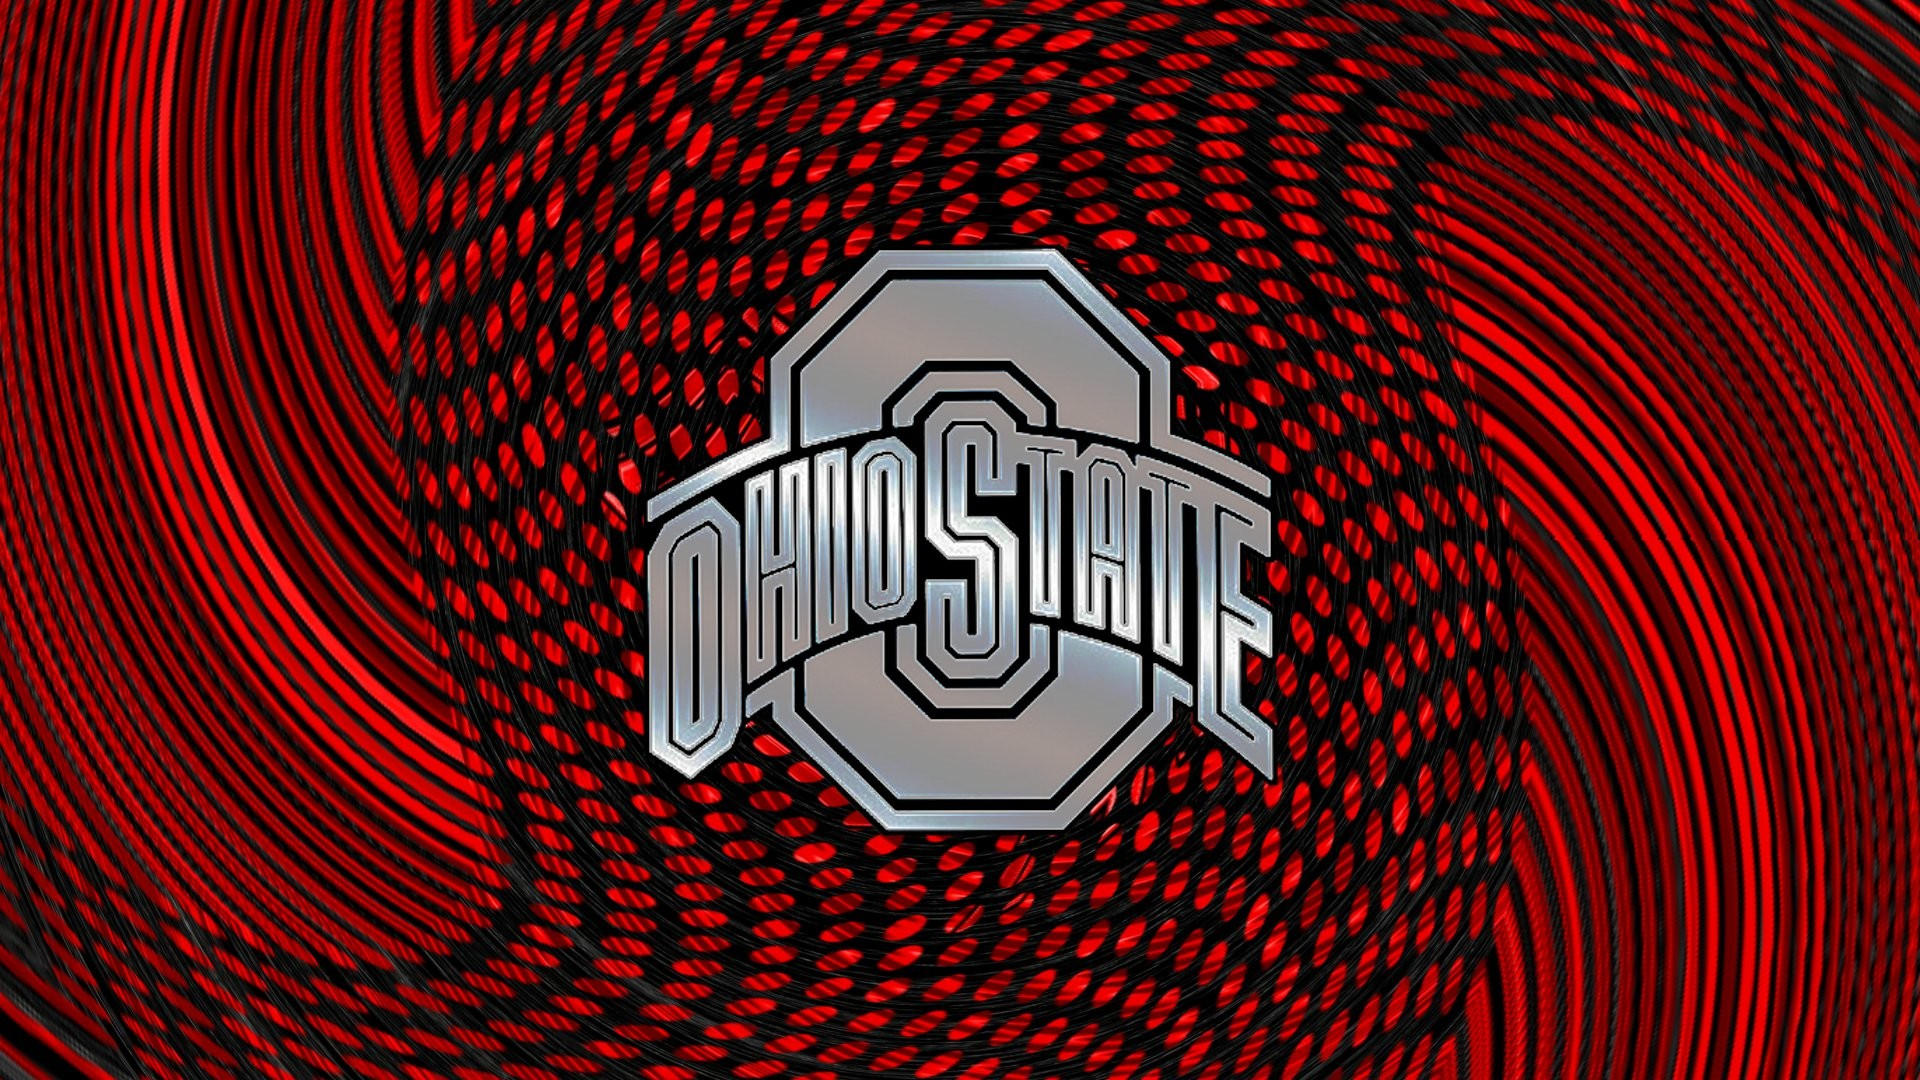 Ohio State Football Wallpaper (75+ images)